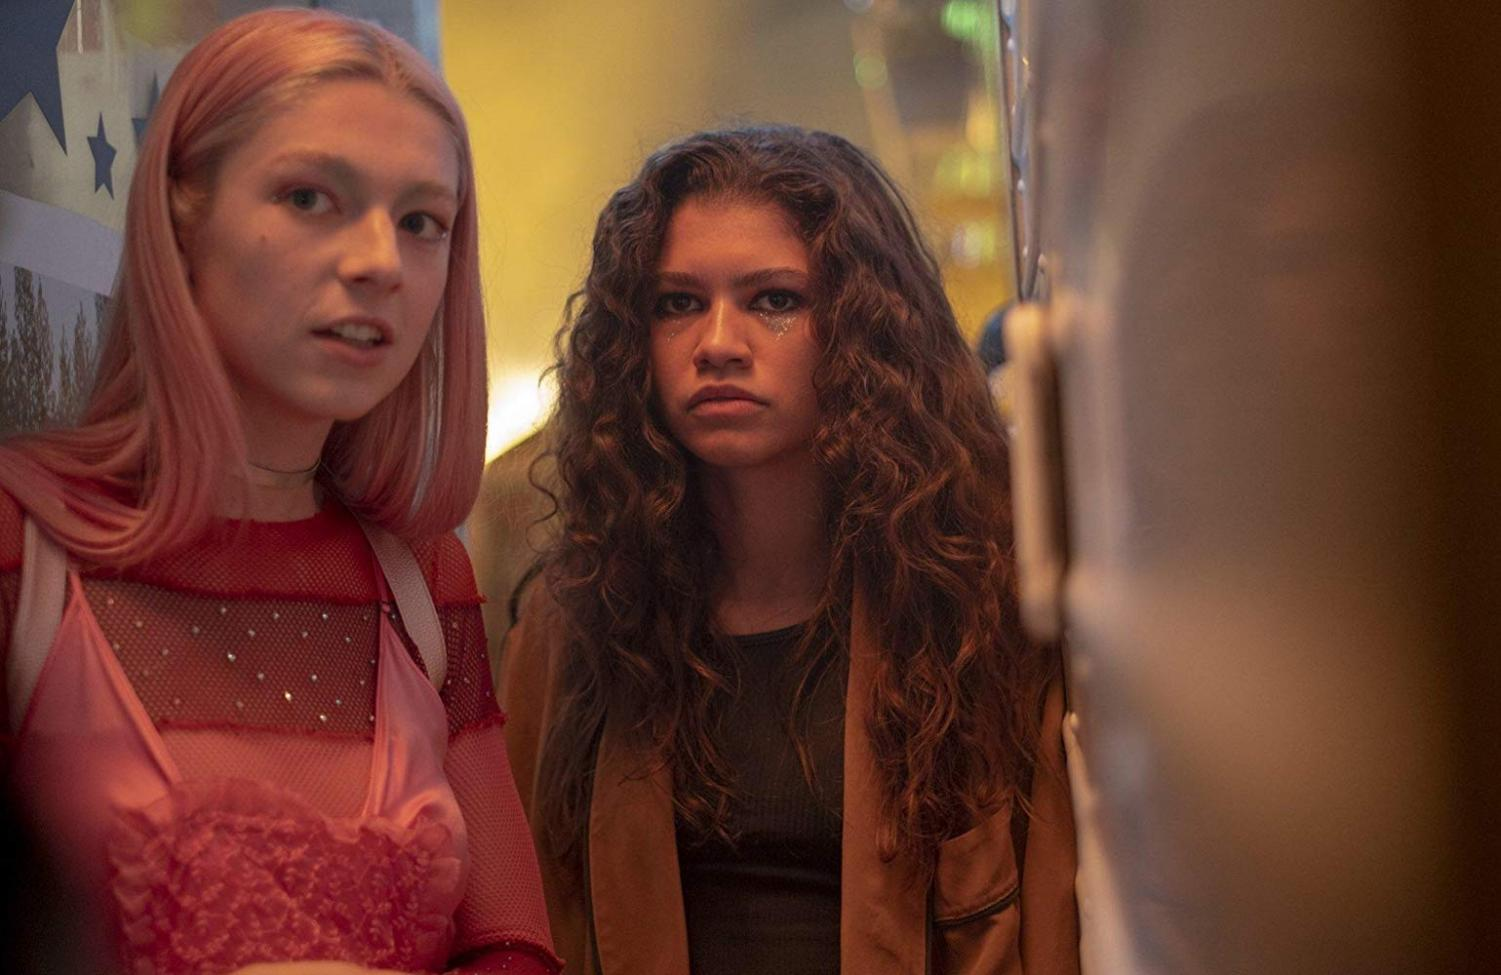 Rue, played by Zendaya Coleman, and Jules, played by Hunter Schafer, hide in-between carts at the town carnvial.